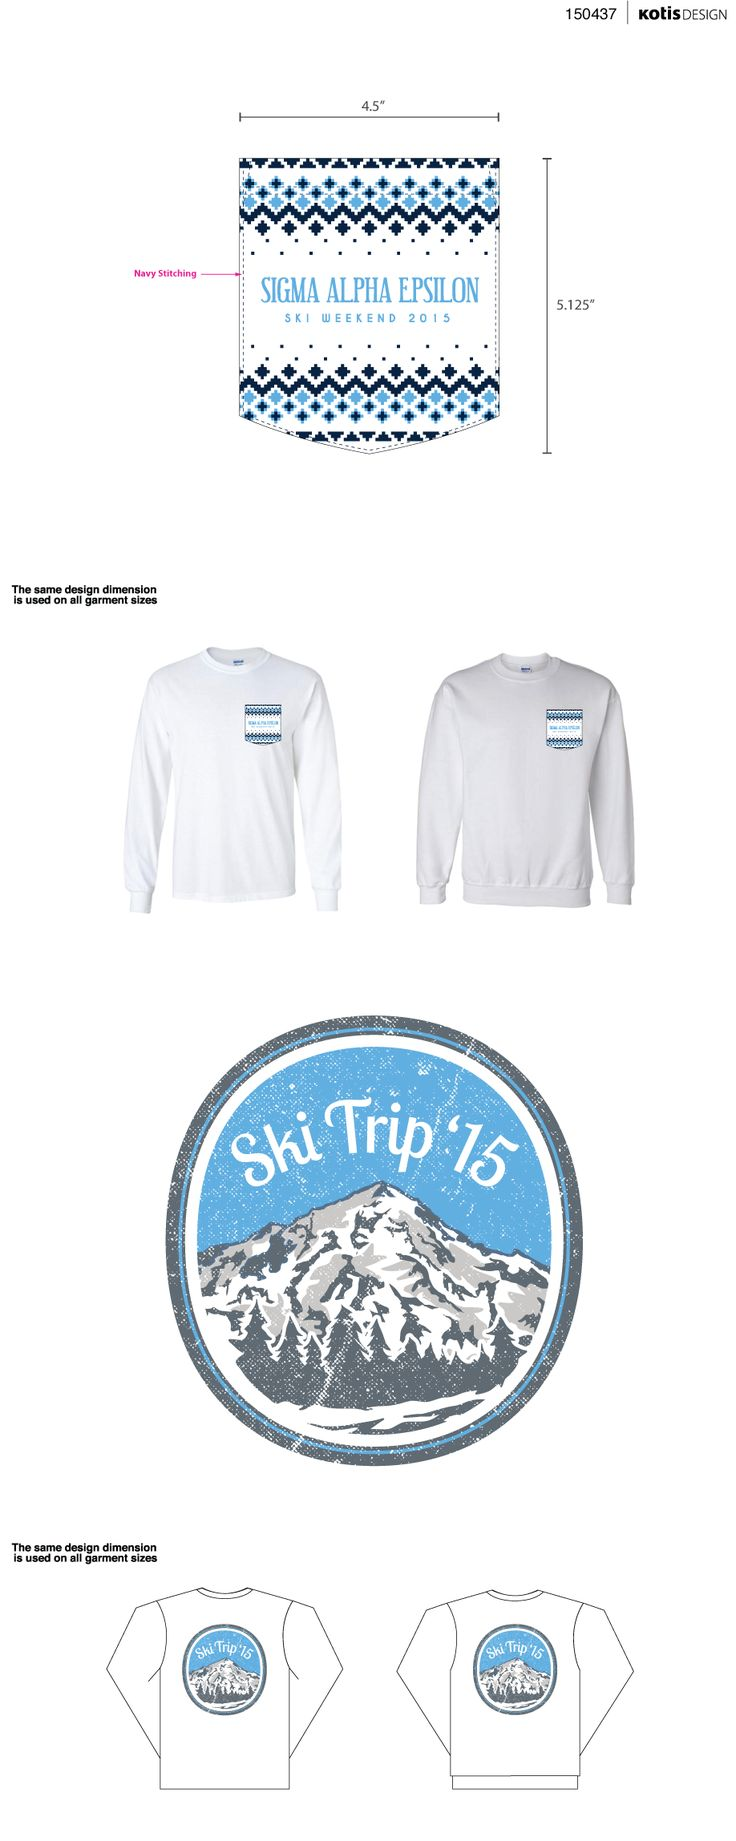 150437 - MSU SAE | Ski Weekend '15 - View Proof - Kotis Design